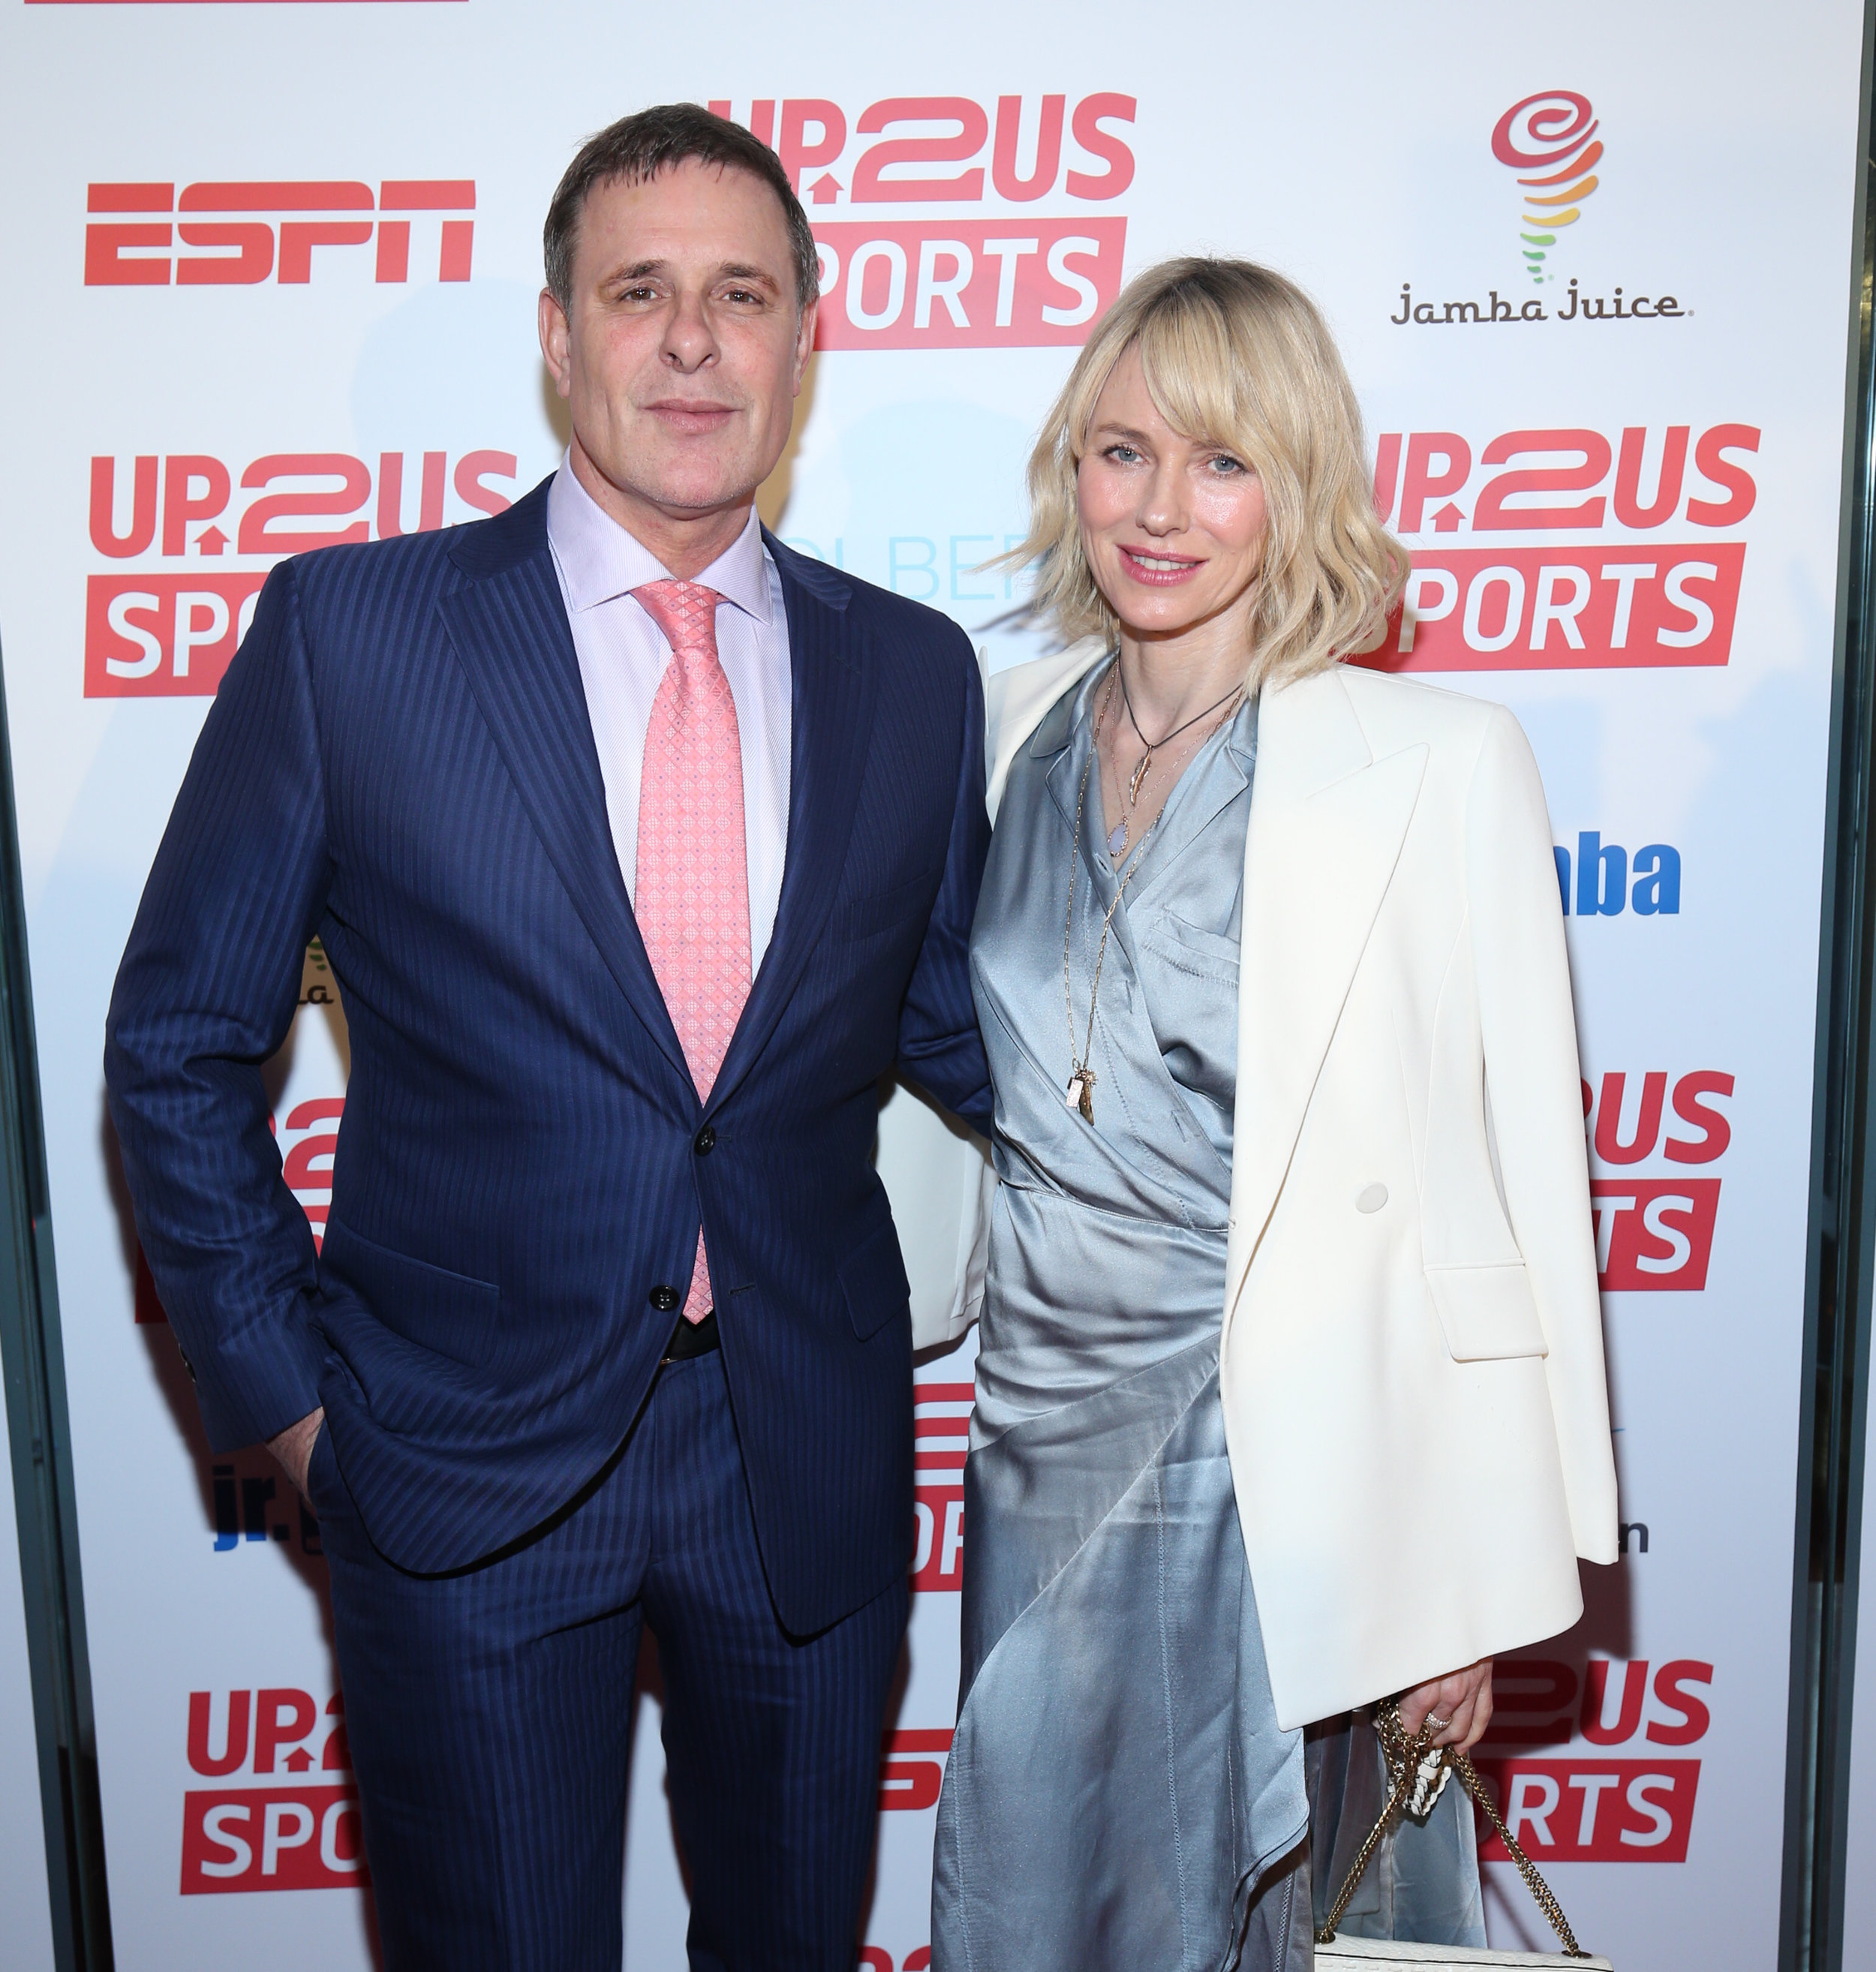 NEW YORK, NY - MAY 15: Dr. David Colbert (L) and Naomi Watts attend the Up2Us Sports Gala 2017 at Guastavino's on May 15, 2017 in New York City. (Photo by Rob Kim/Getty Images for Up2Us Sports)